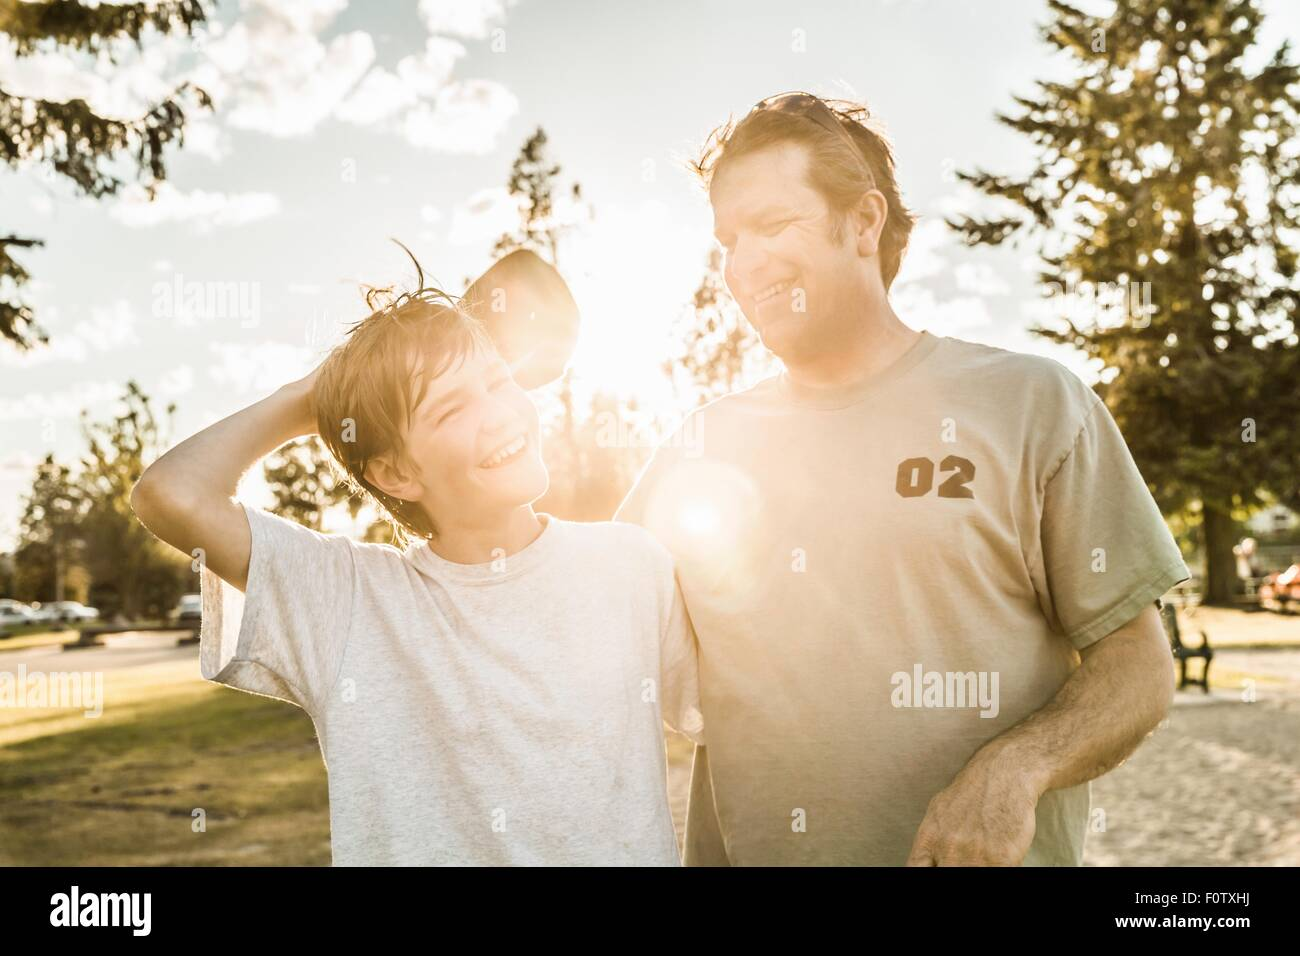 Father and son smiling in sunlight - Stock Image